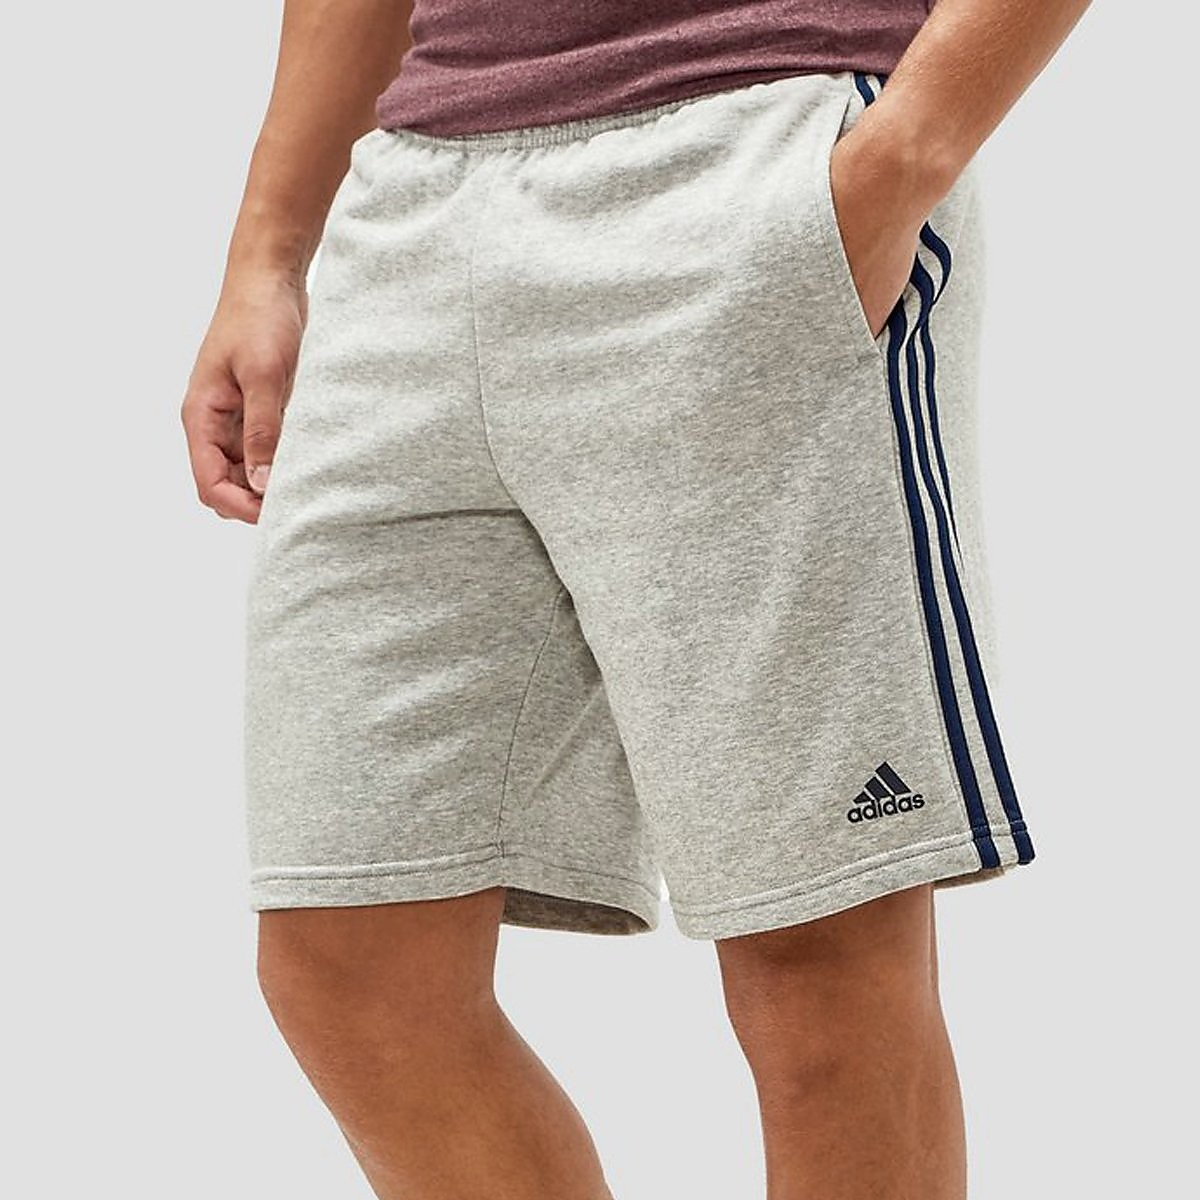 ADIDAS ESSENTIAL 3-STRIPES SHORT